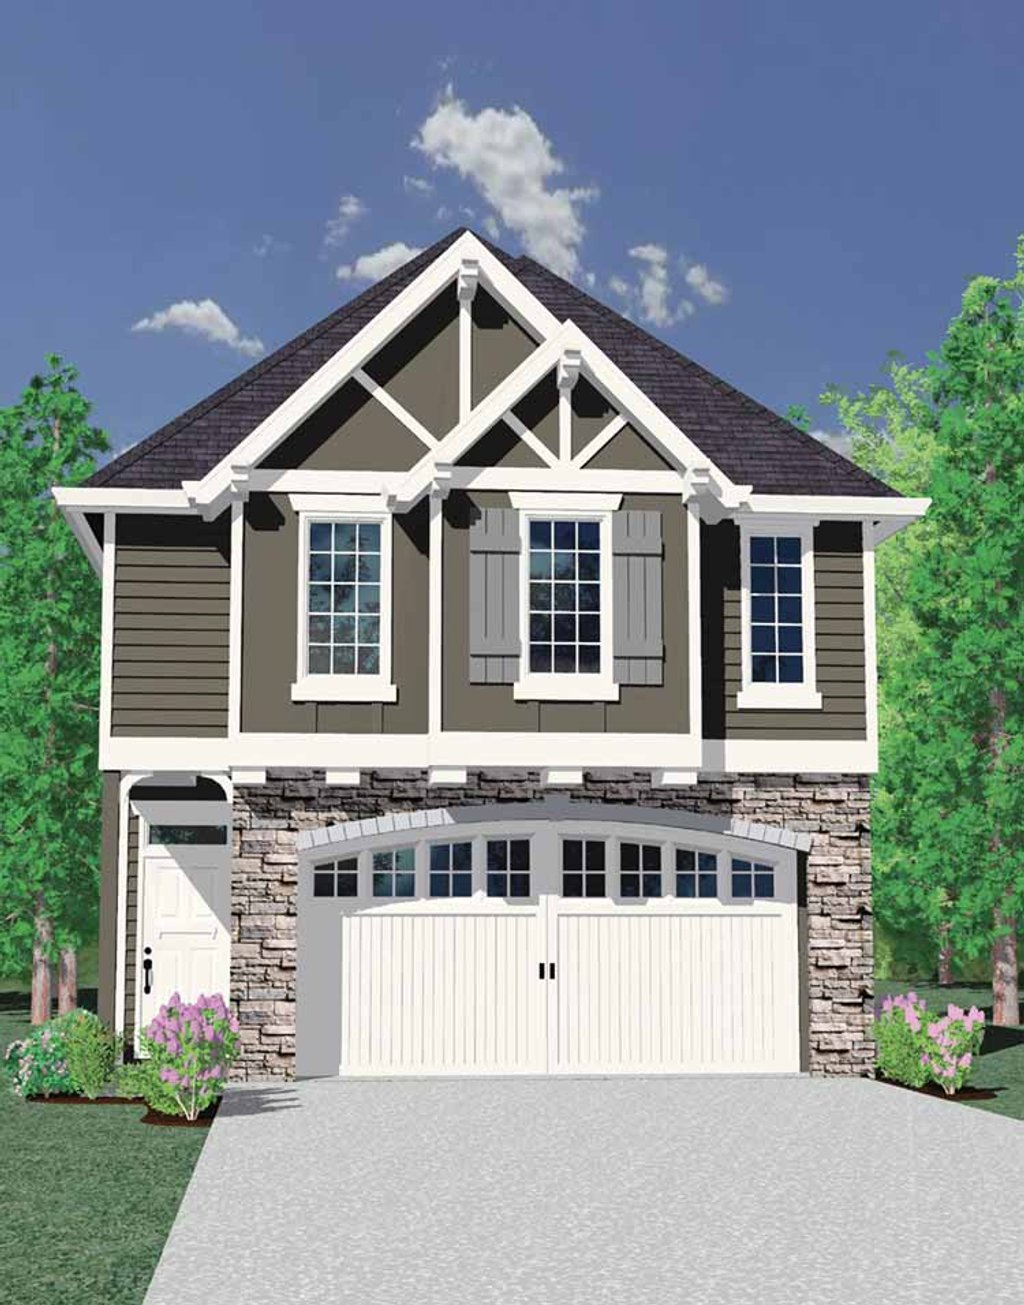 Craftsman style house plan 4 beds 2 5 baths 1677 sq ft for Breland homes floor plans